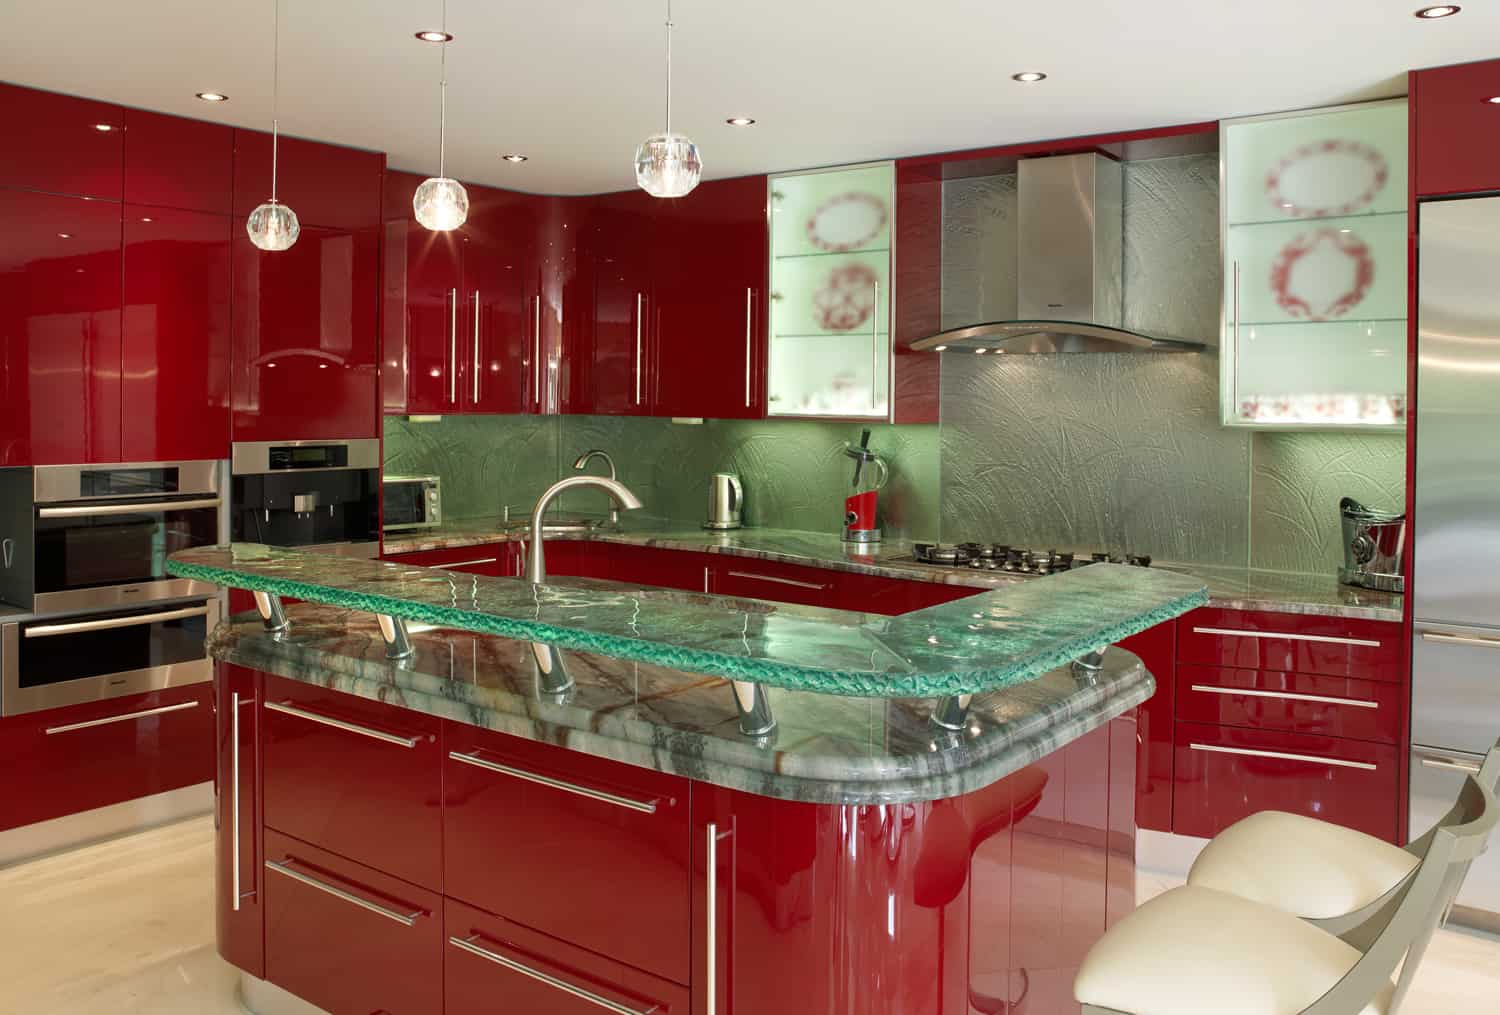 Modern Kitchen Countertops from Unusual Materials: 30 Ideas